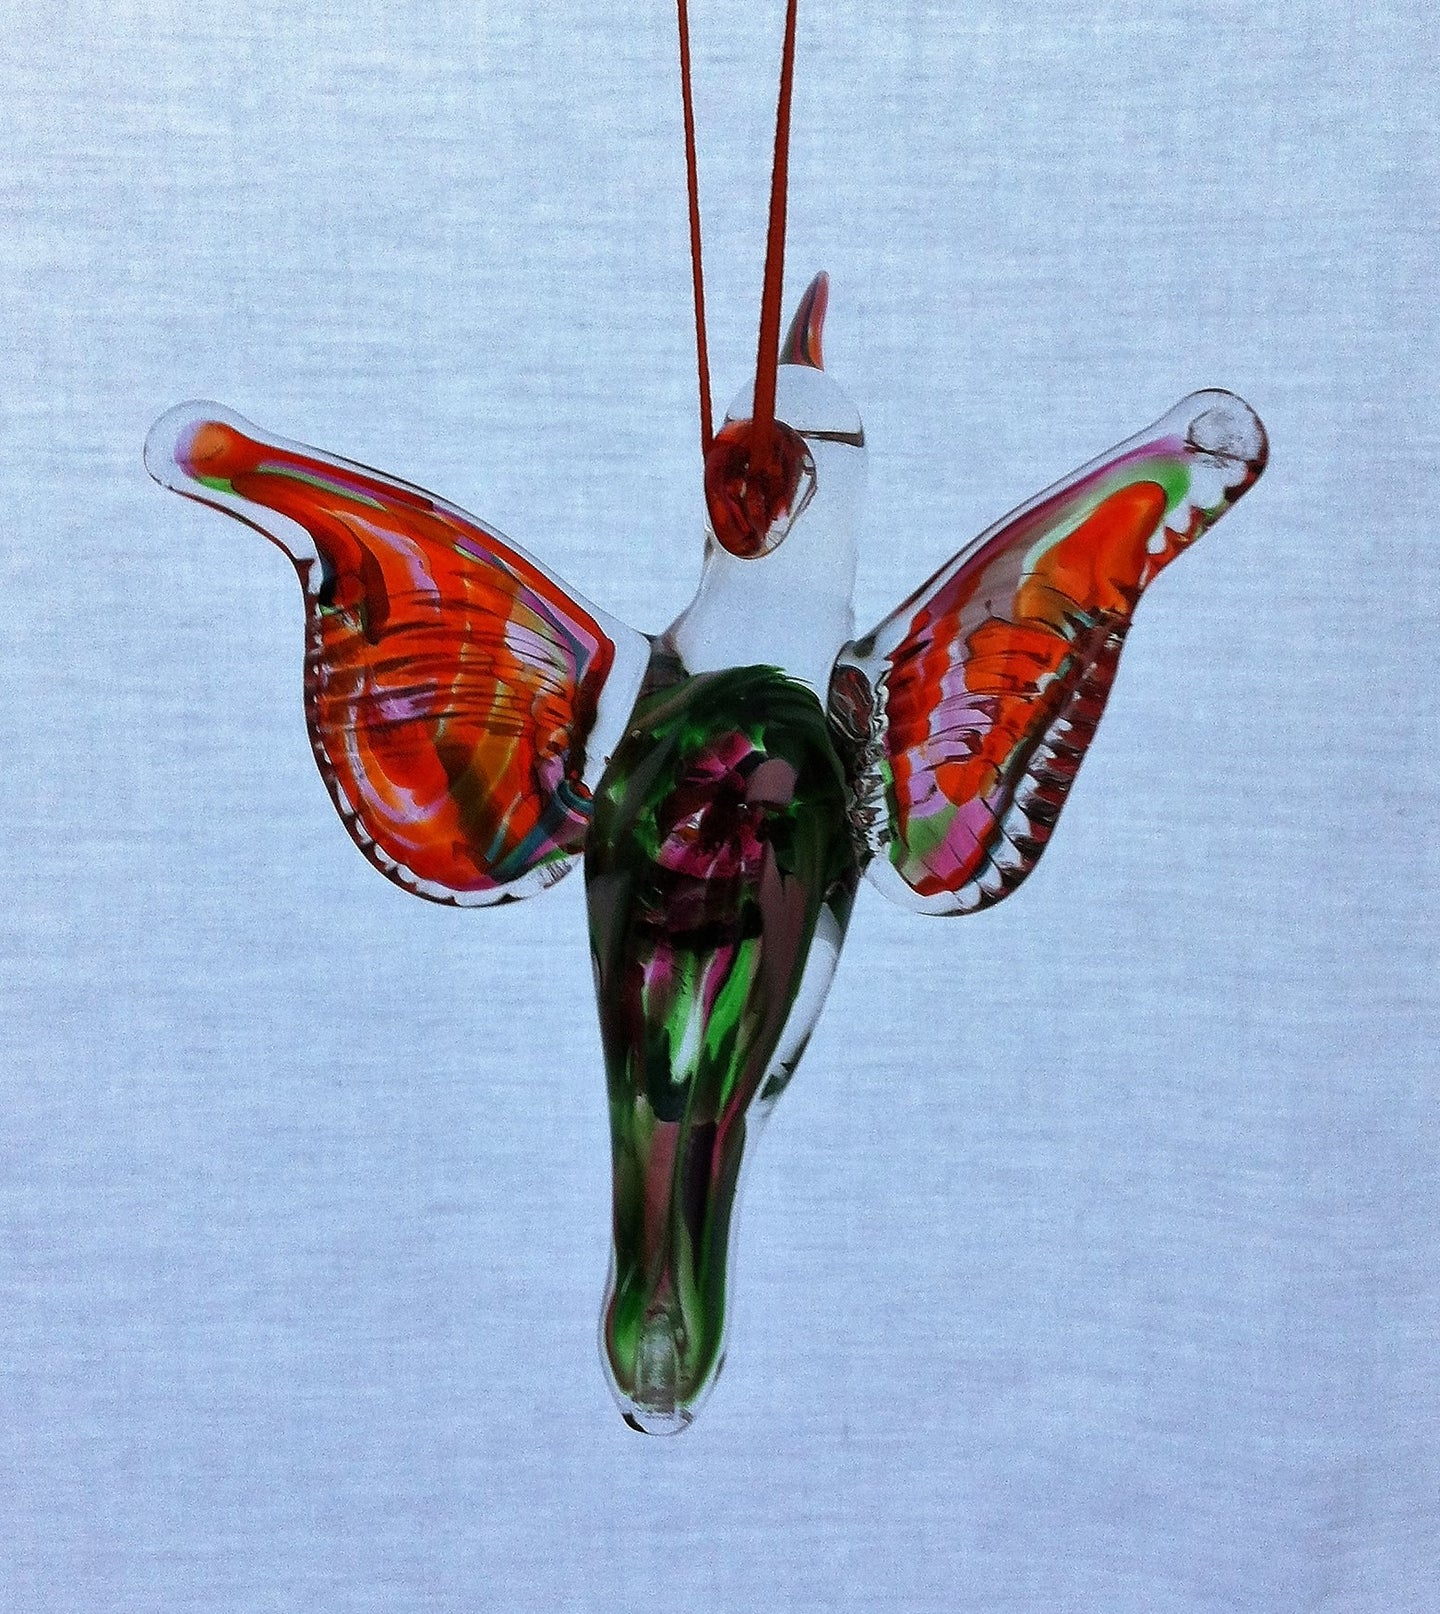 #Co-02 Colibri / Hummingbird